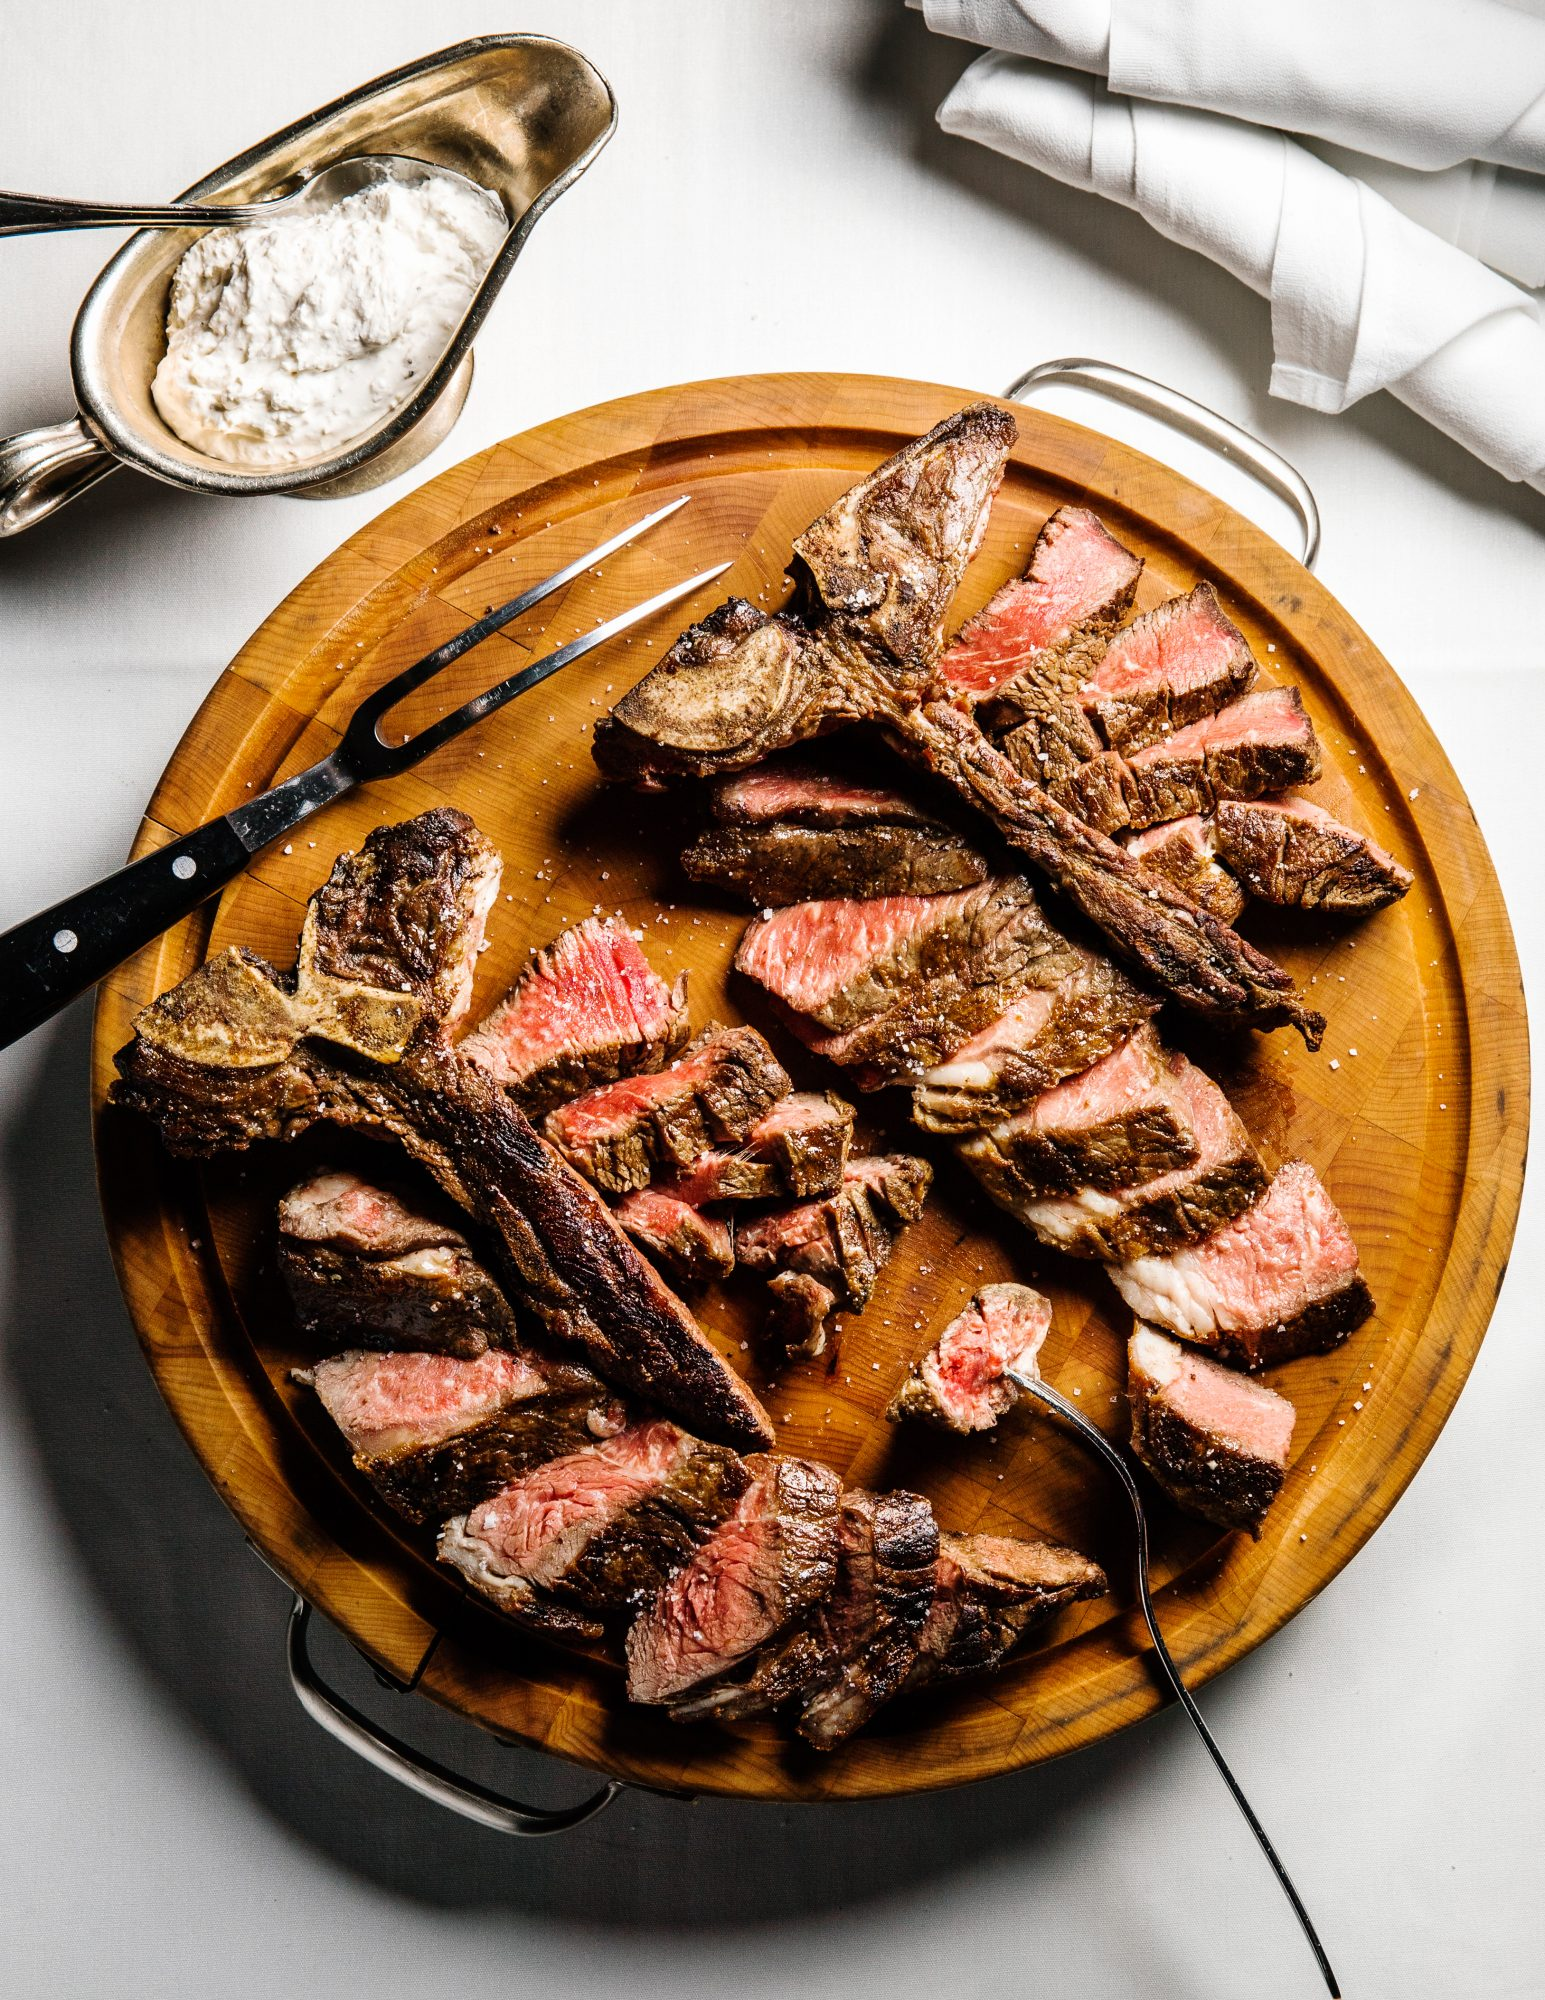 Grilled Steak Platter